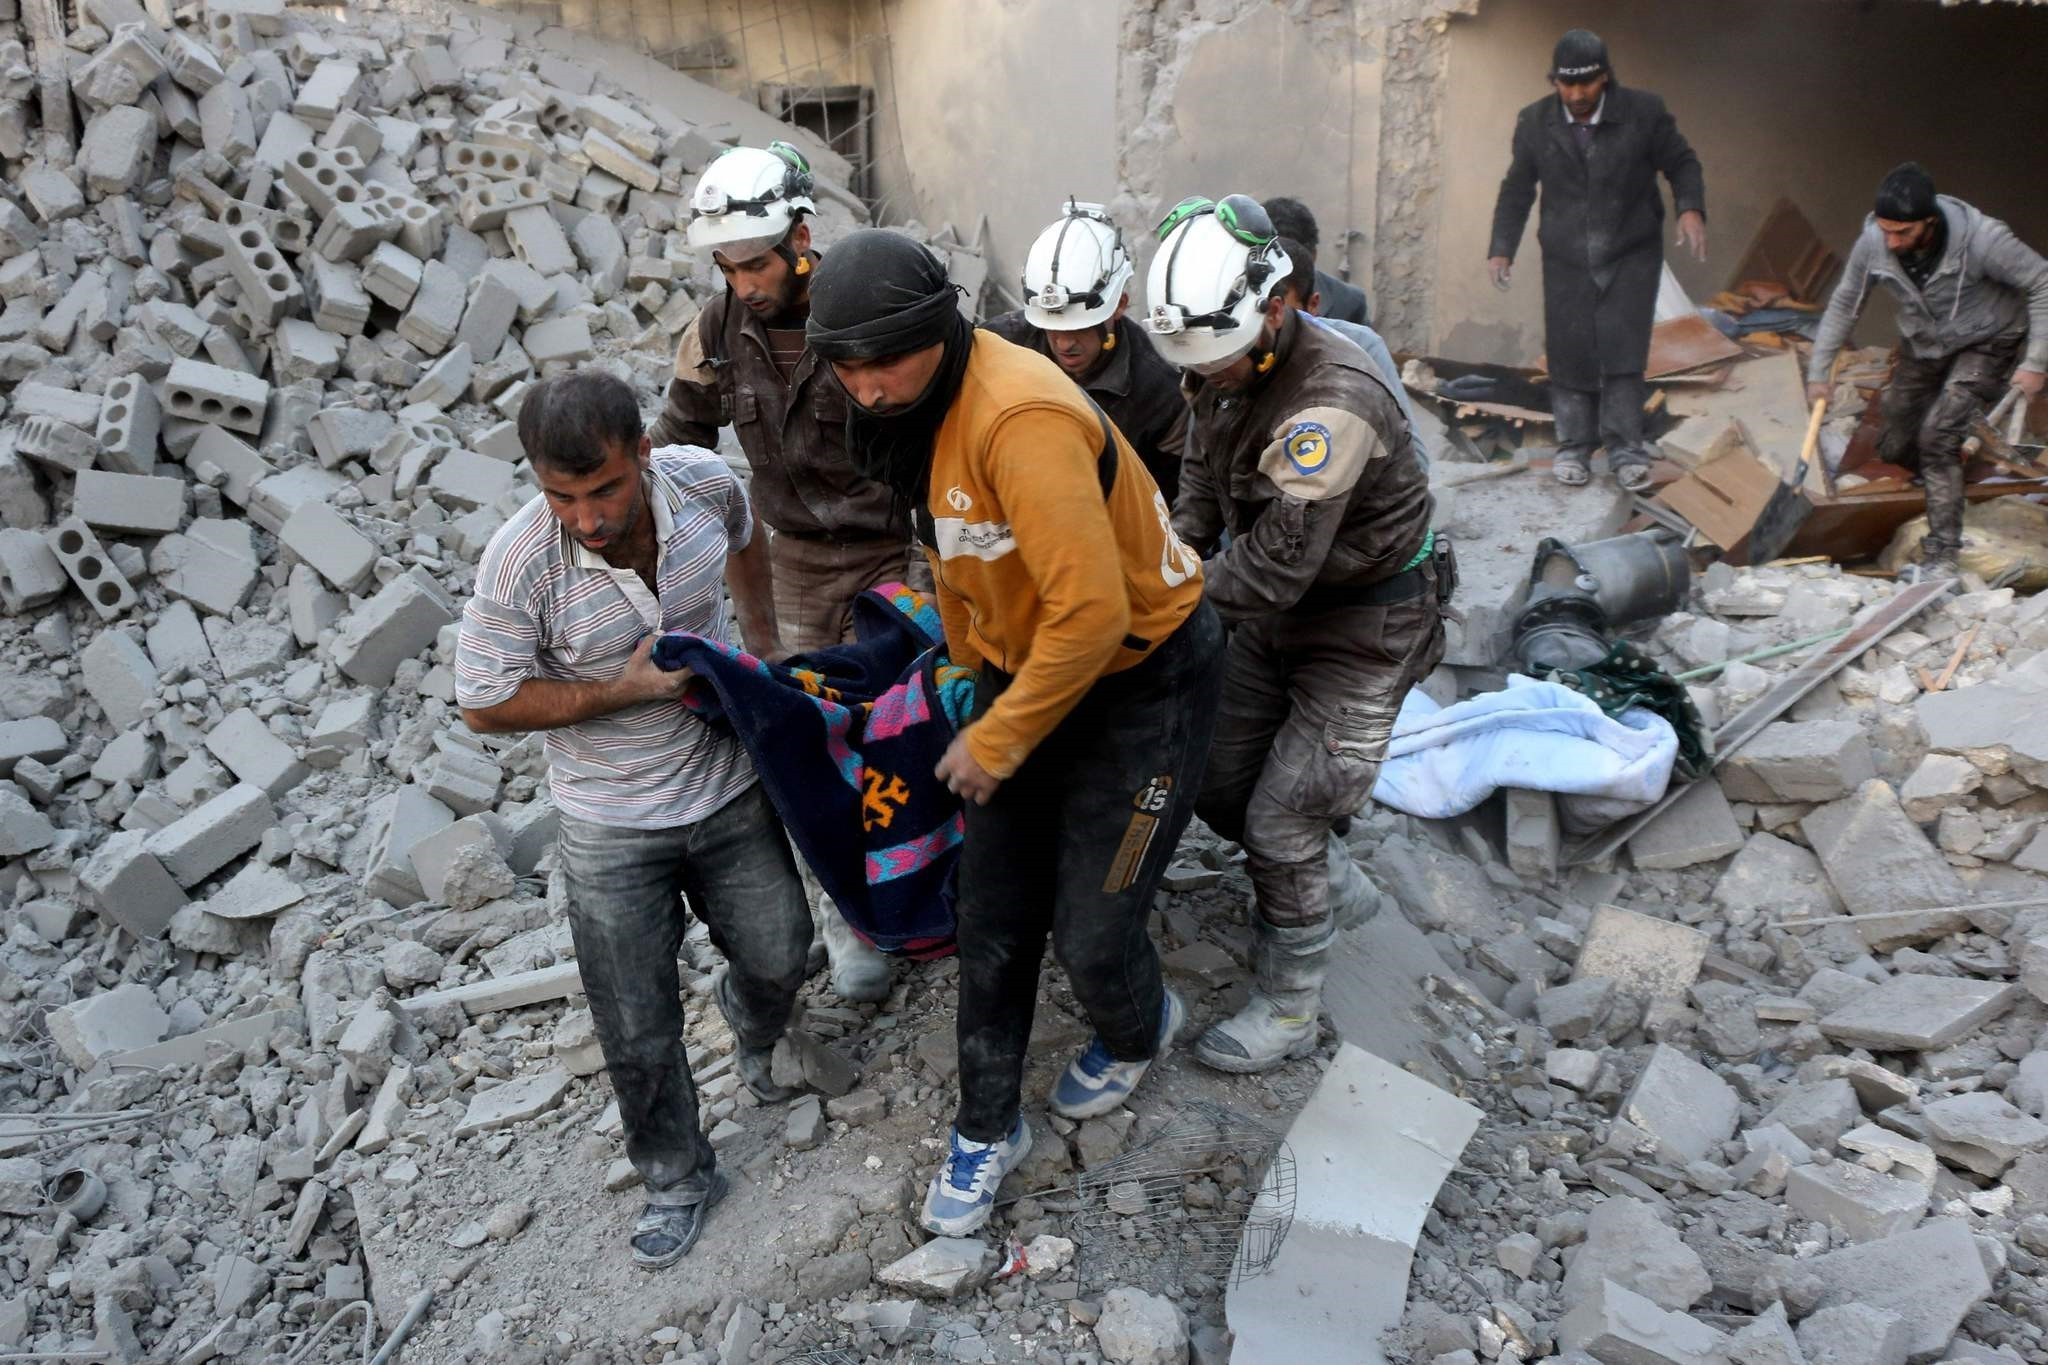 Syrian civil defence volunteers evacuate a victim from the rubble of a building following reported airstrikes on Aleppo's rebel-held district of al-Hamra on November 20, 2016. (AFP PHOTO)